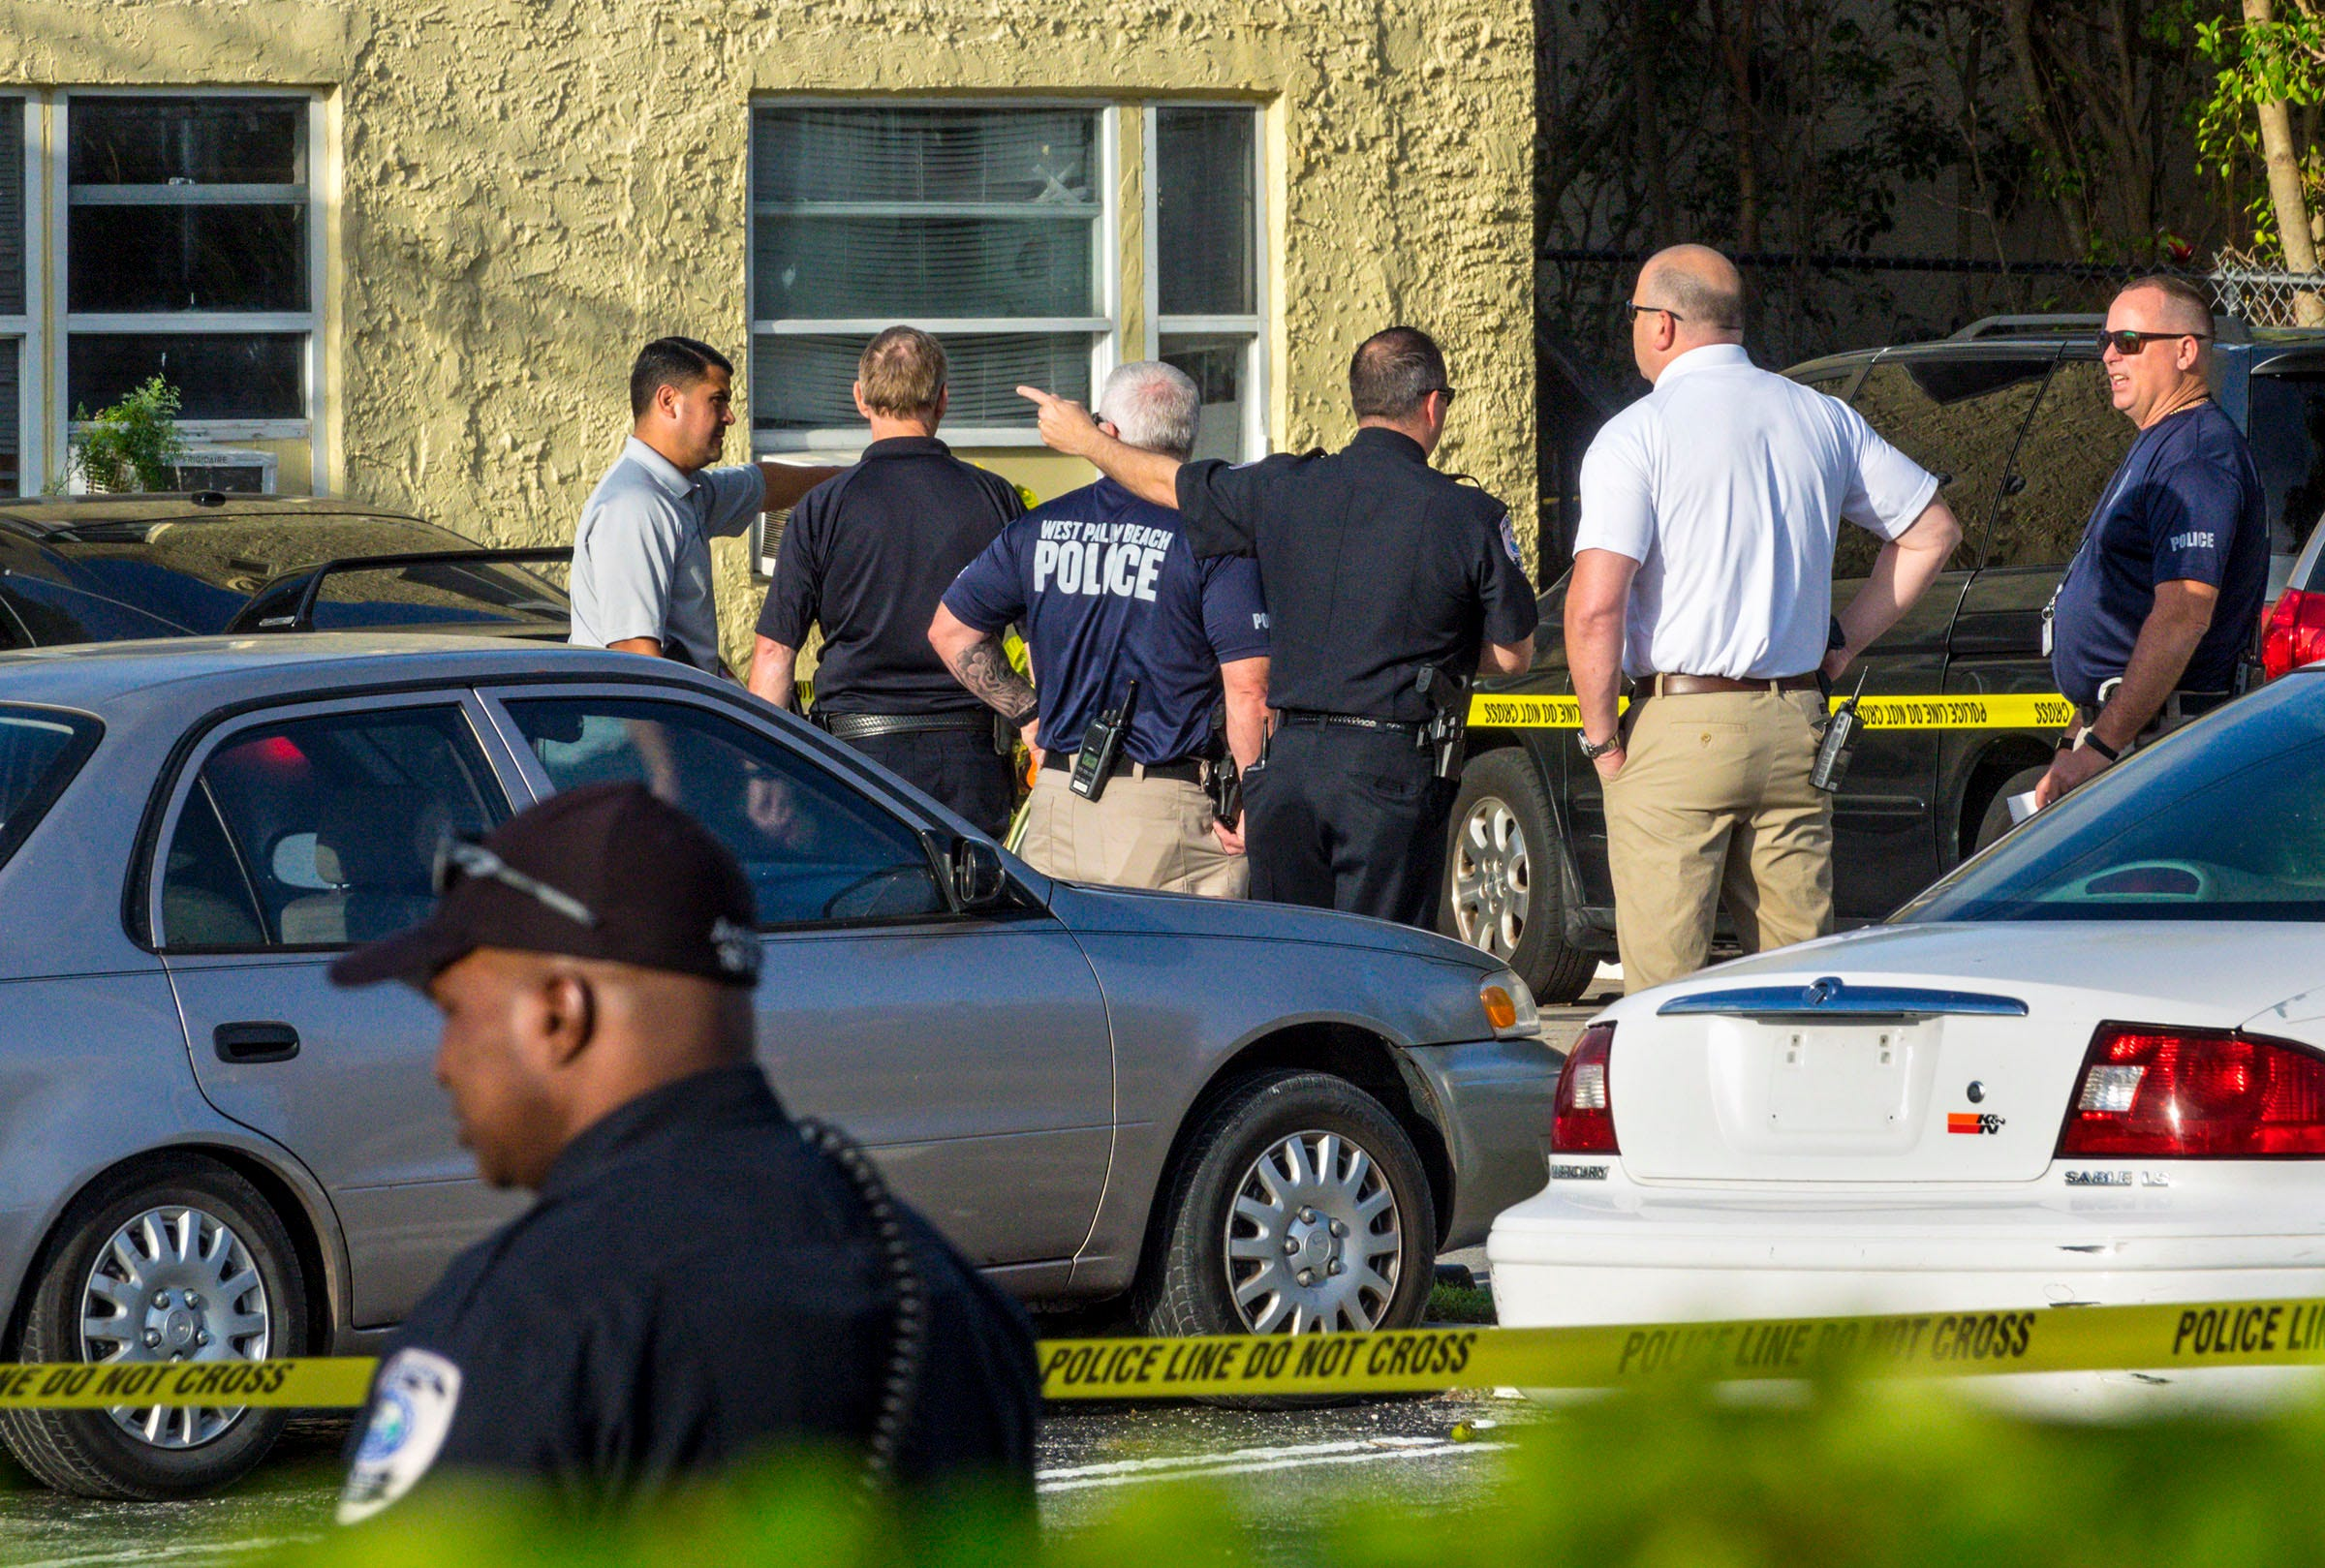 West Palm Beach police investigate the fatal shooting of 41-year-old Antonio Sebastian Juan outside on 37th Street in West Palm Beach on May 4, 2018.